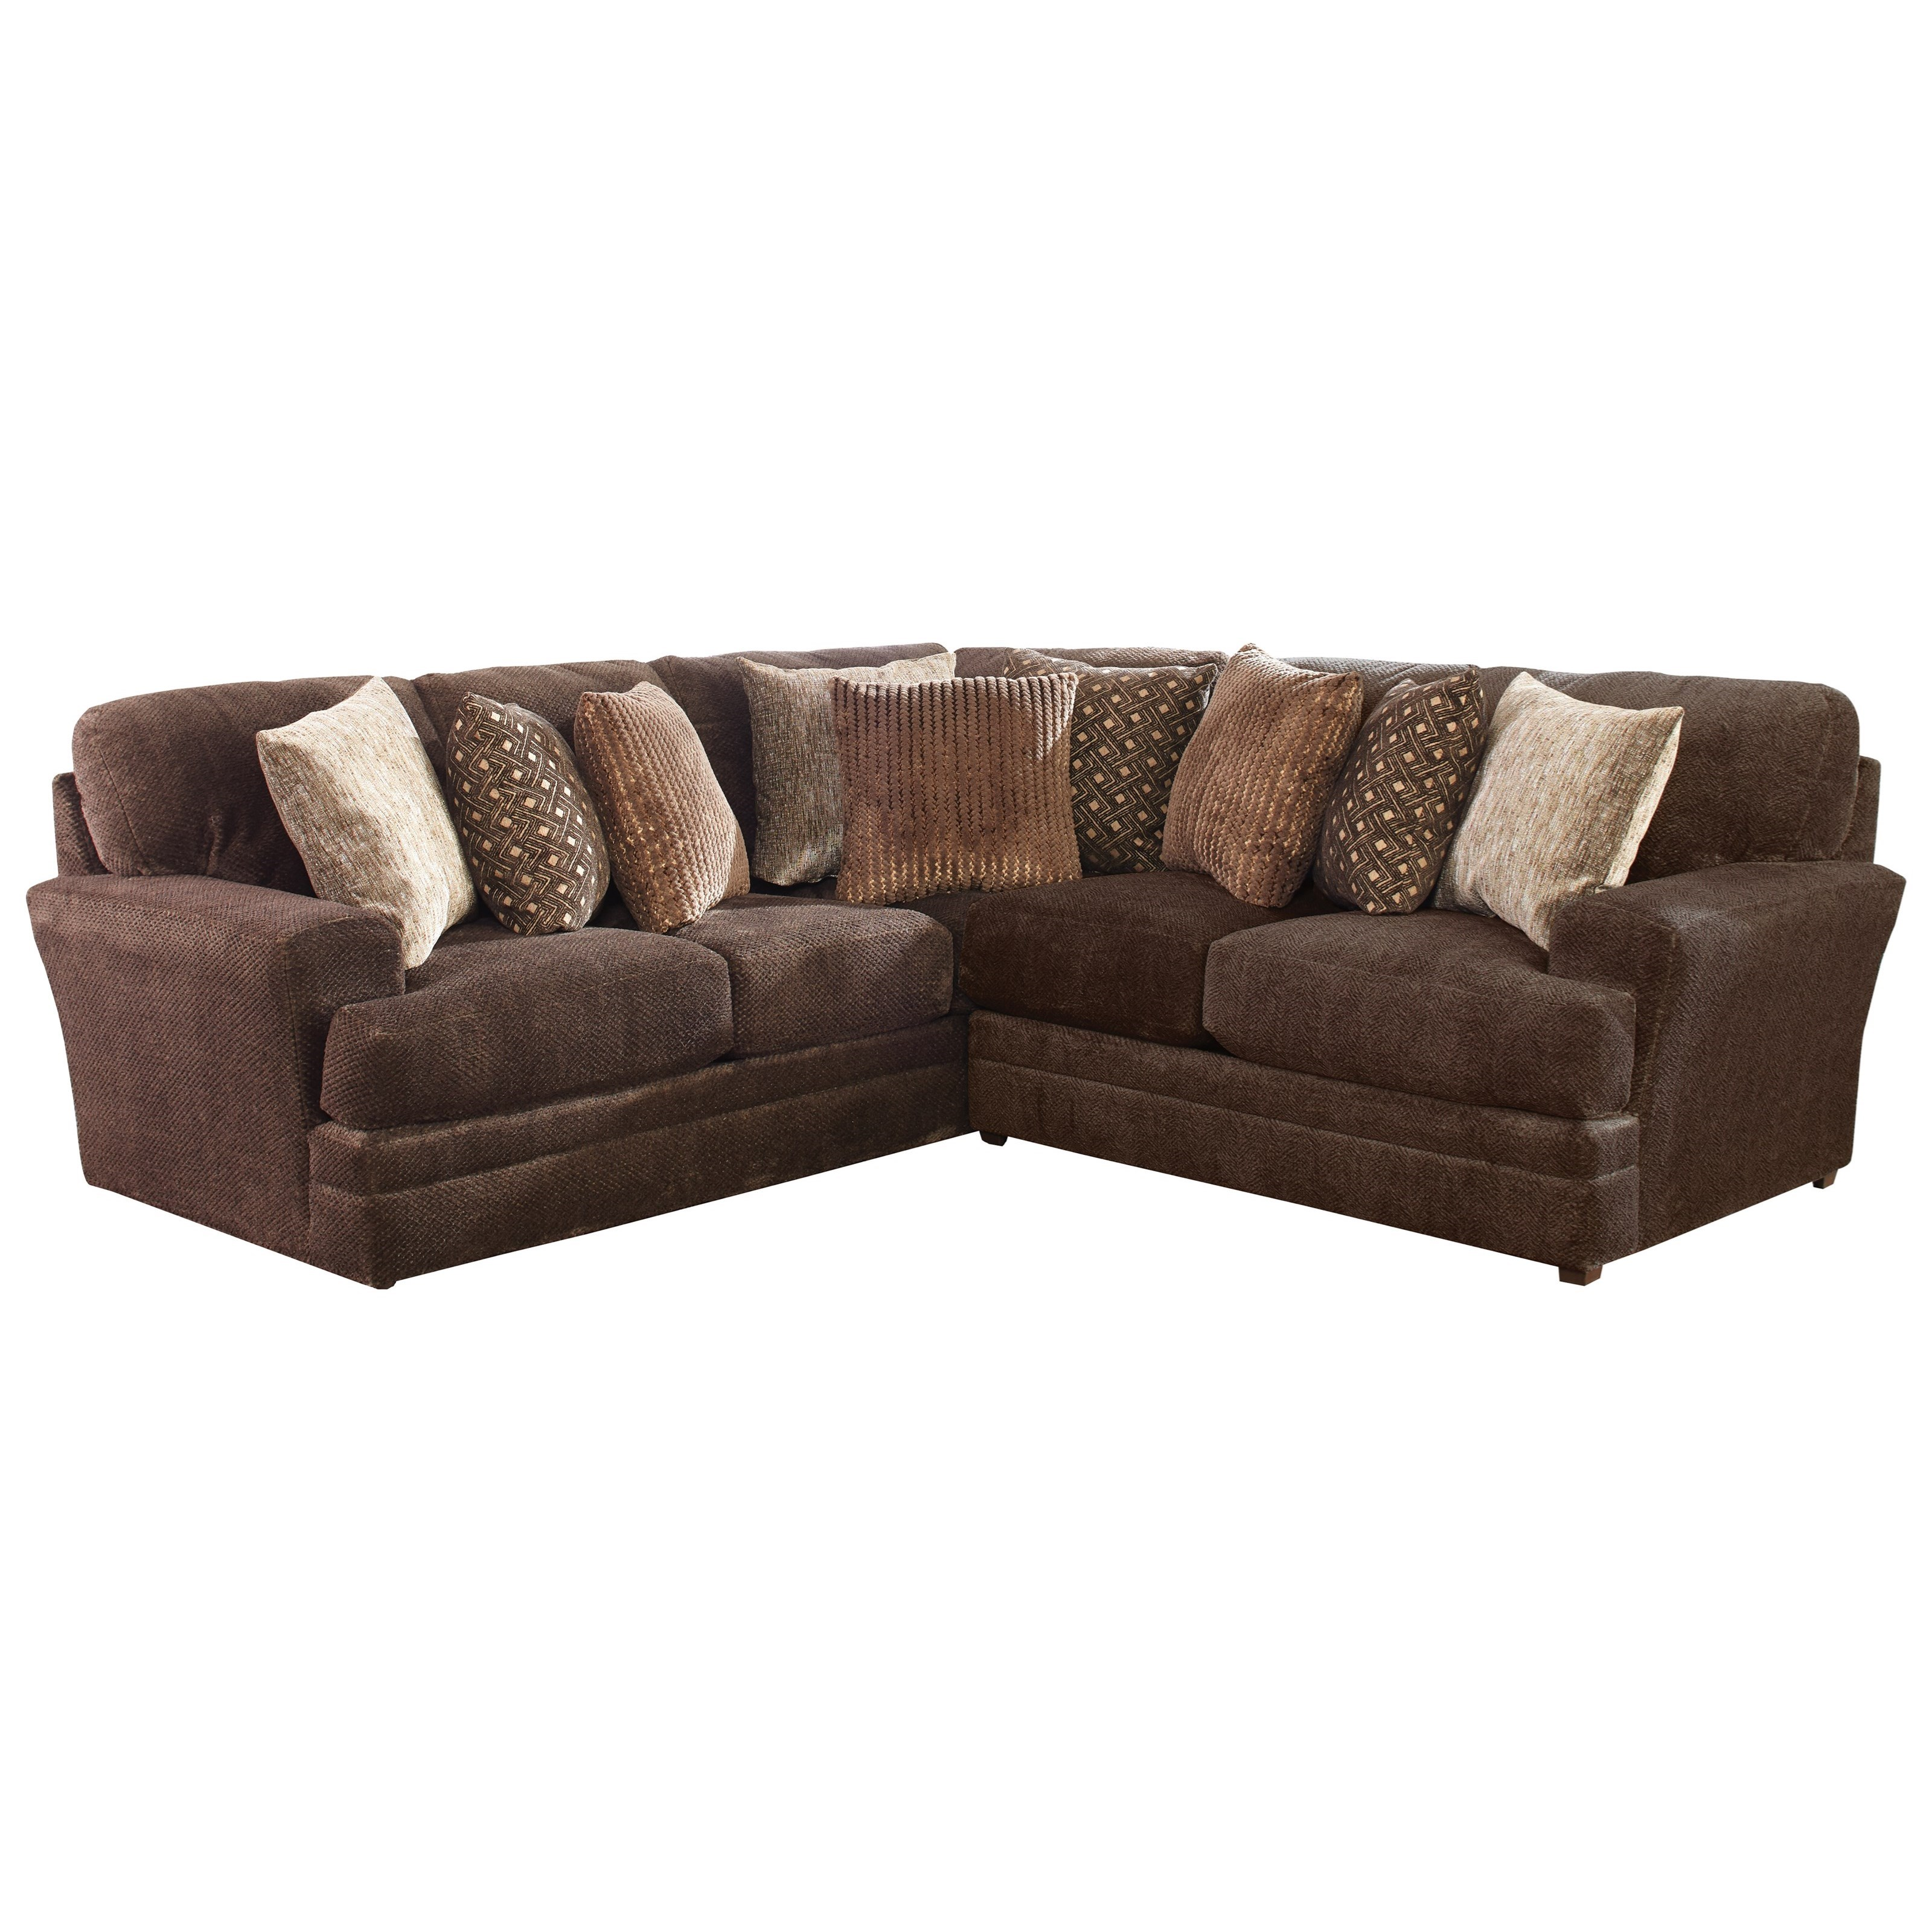 Mammoth 2 Piece Sectional by Jackson Furniture at Lapeer Furniture & Mattress Center